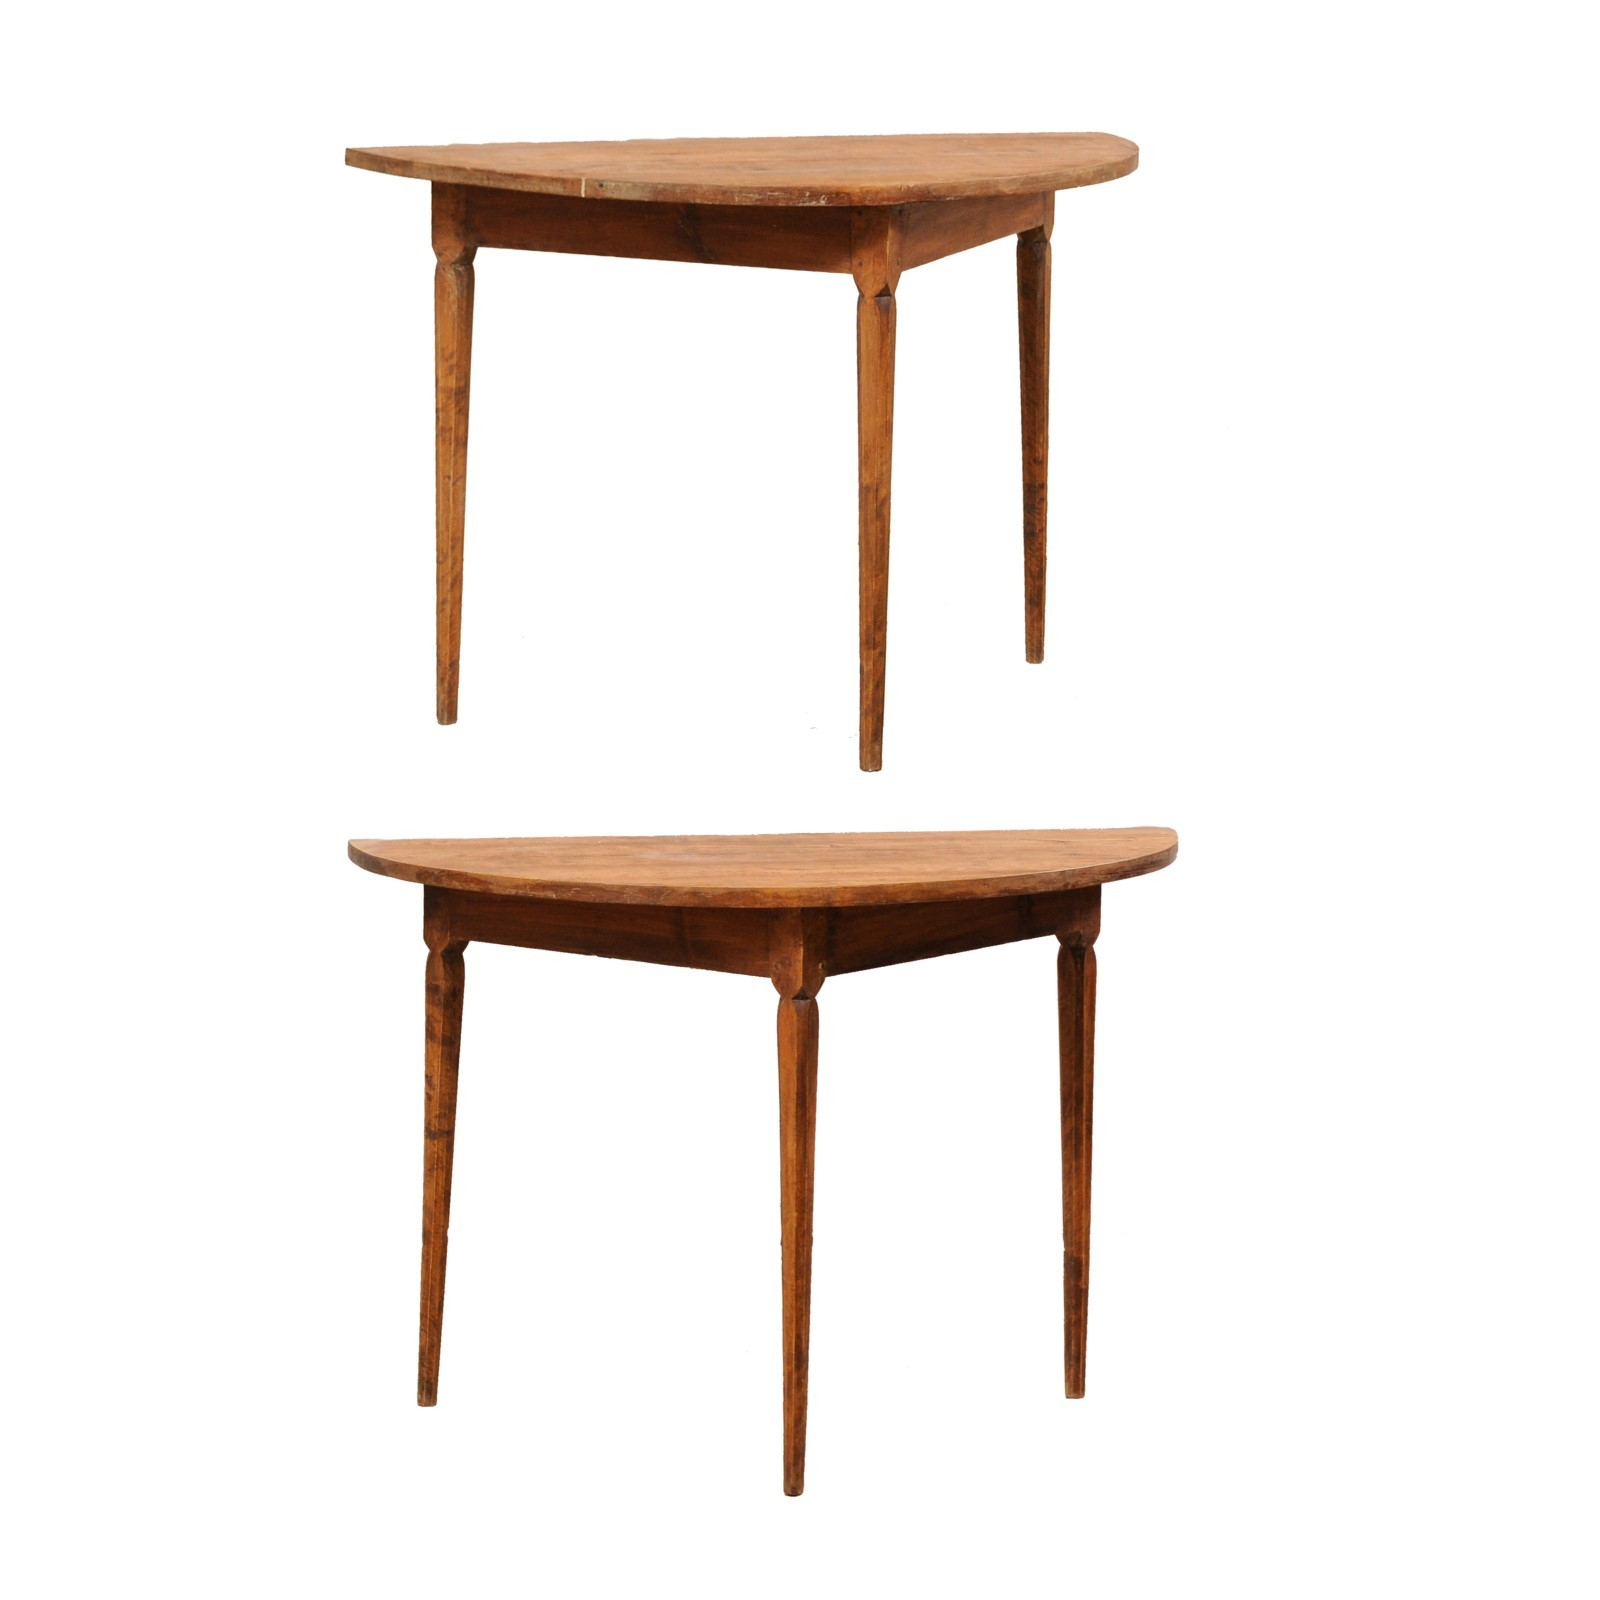 Swedish 19th C. Demi-Lune Tables